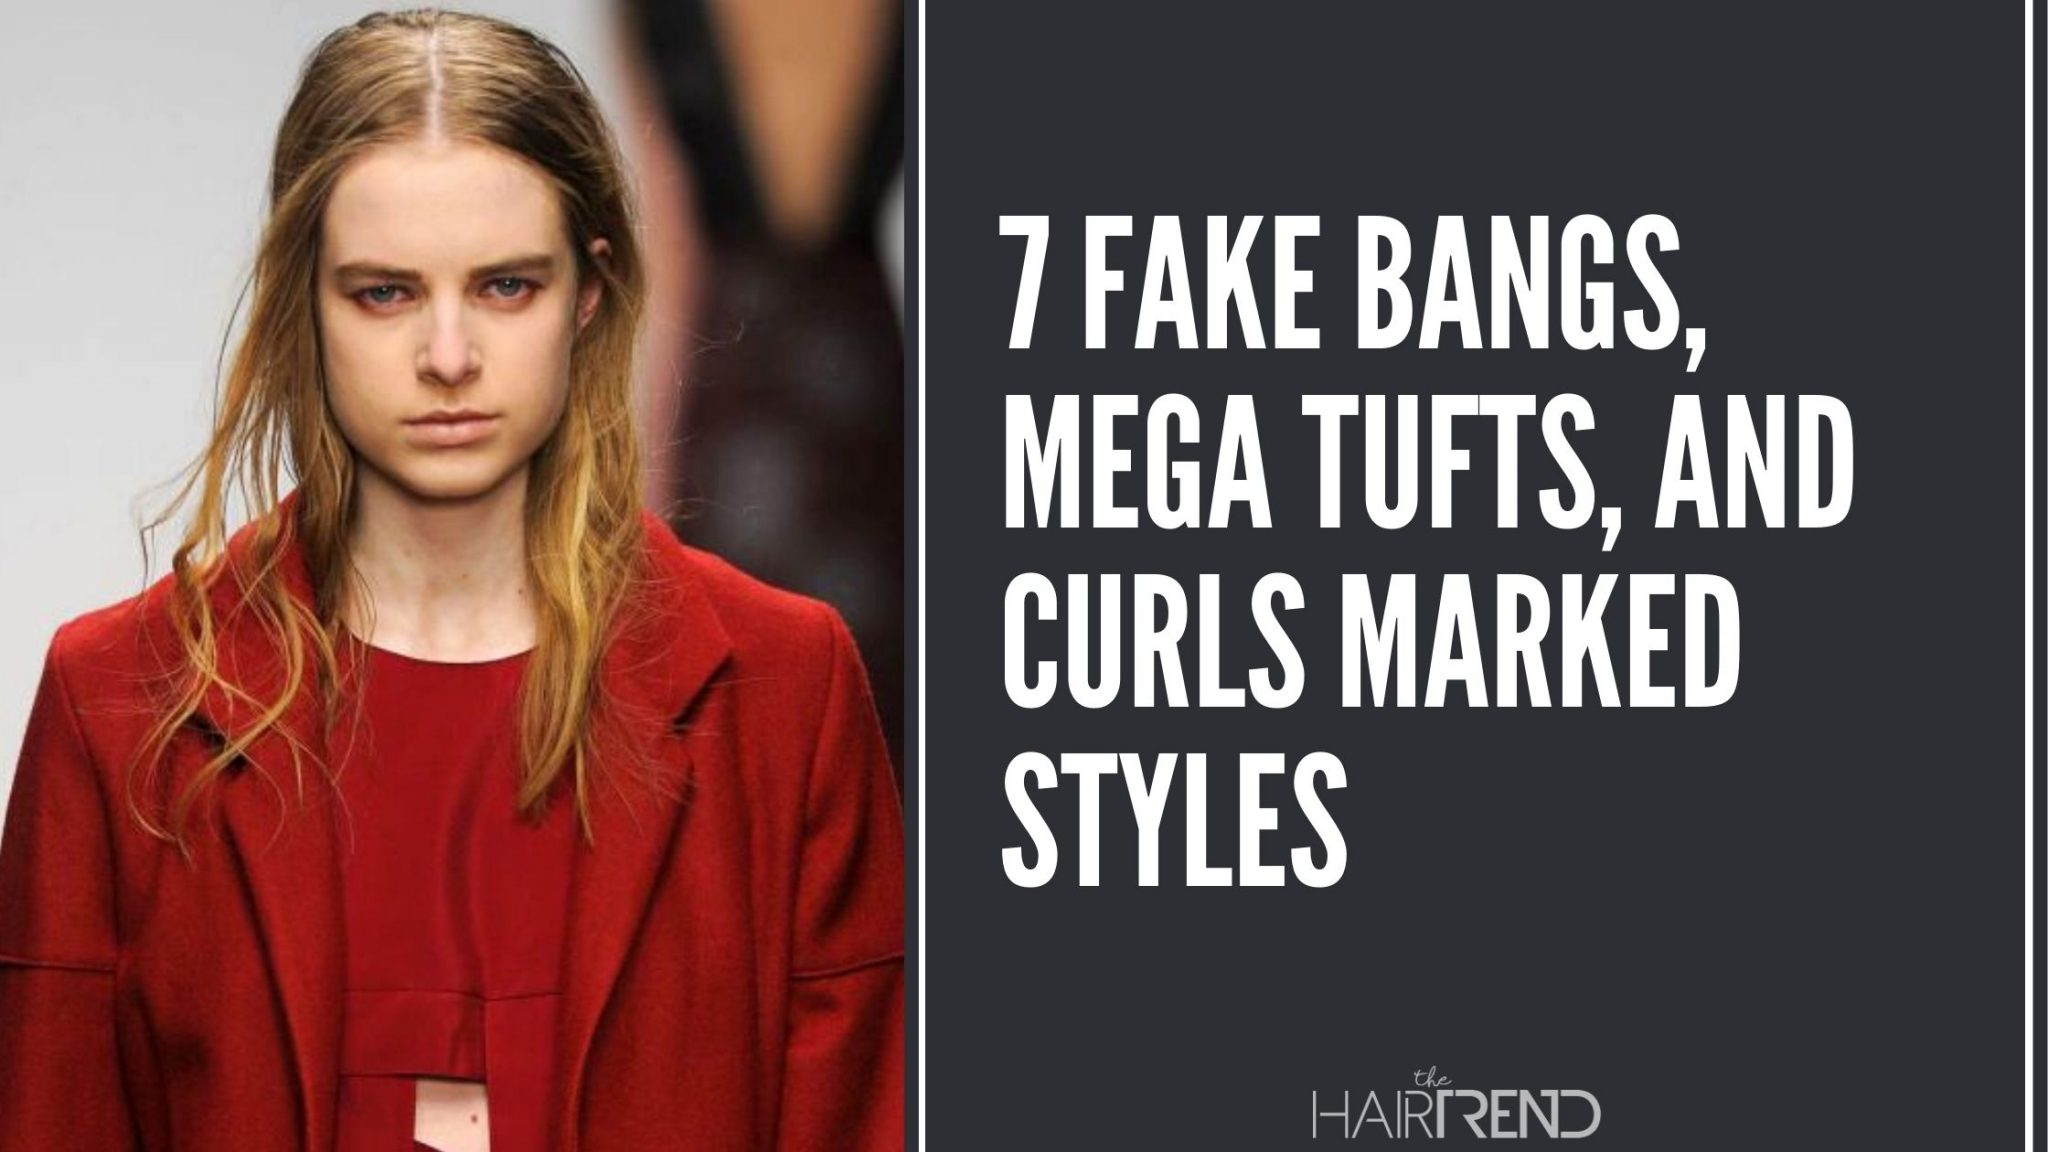 7 FAKE BANGS, MEGA TUFTS, AND CURLS MARKED STYLES